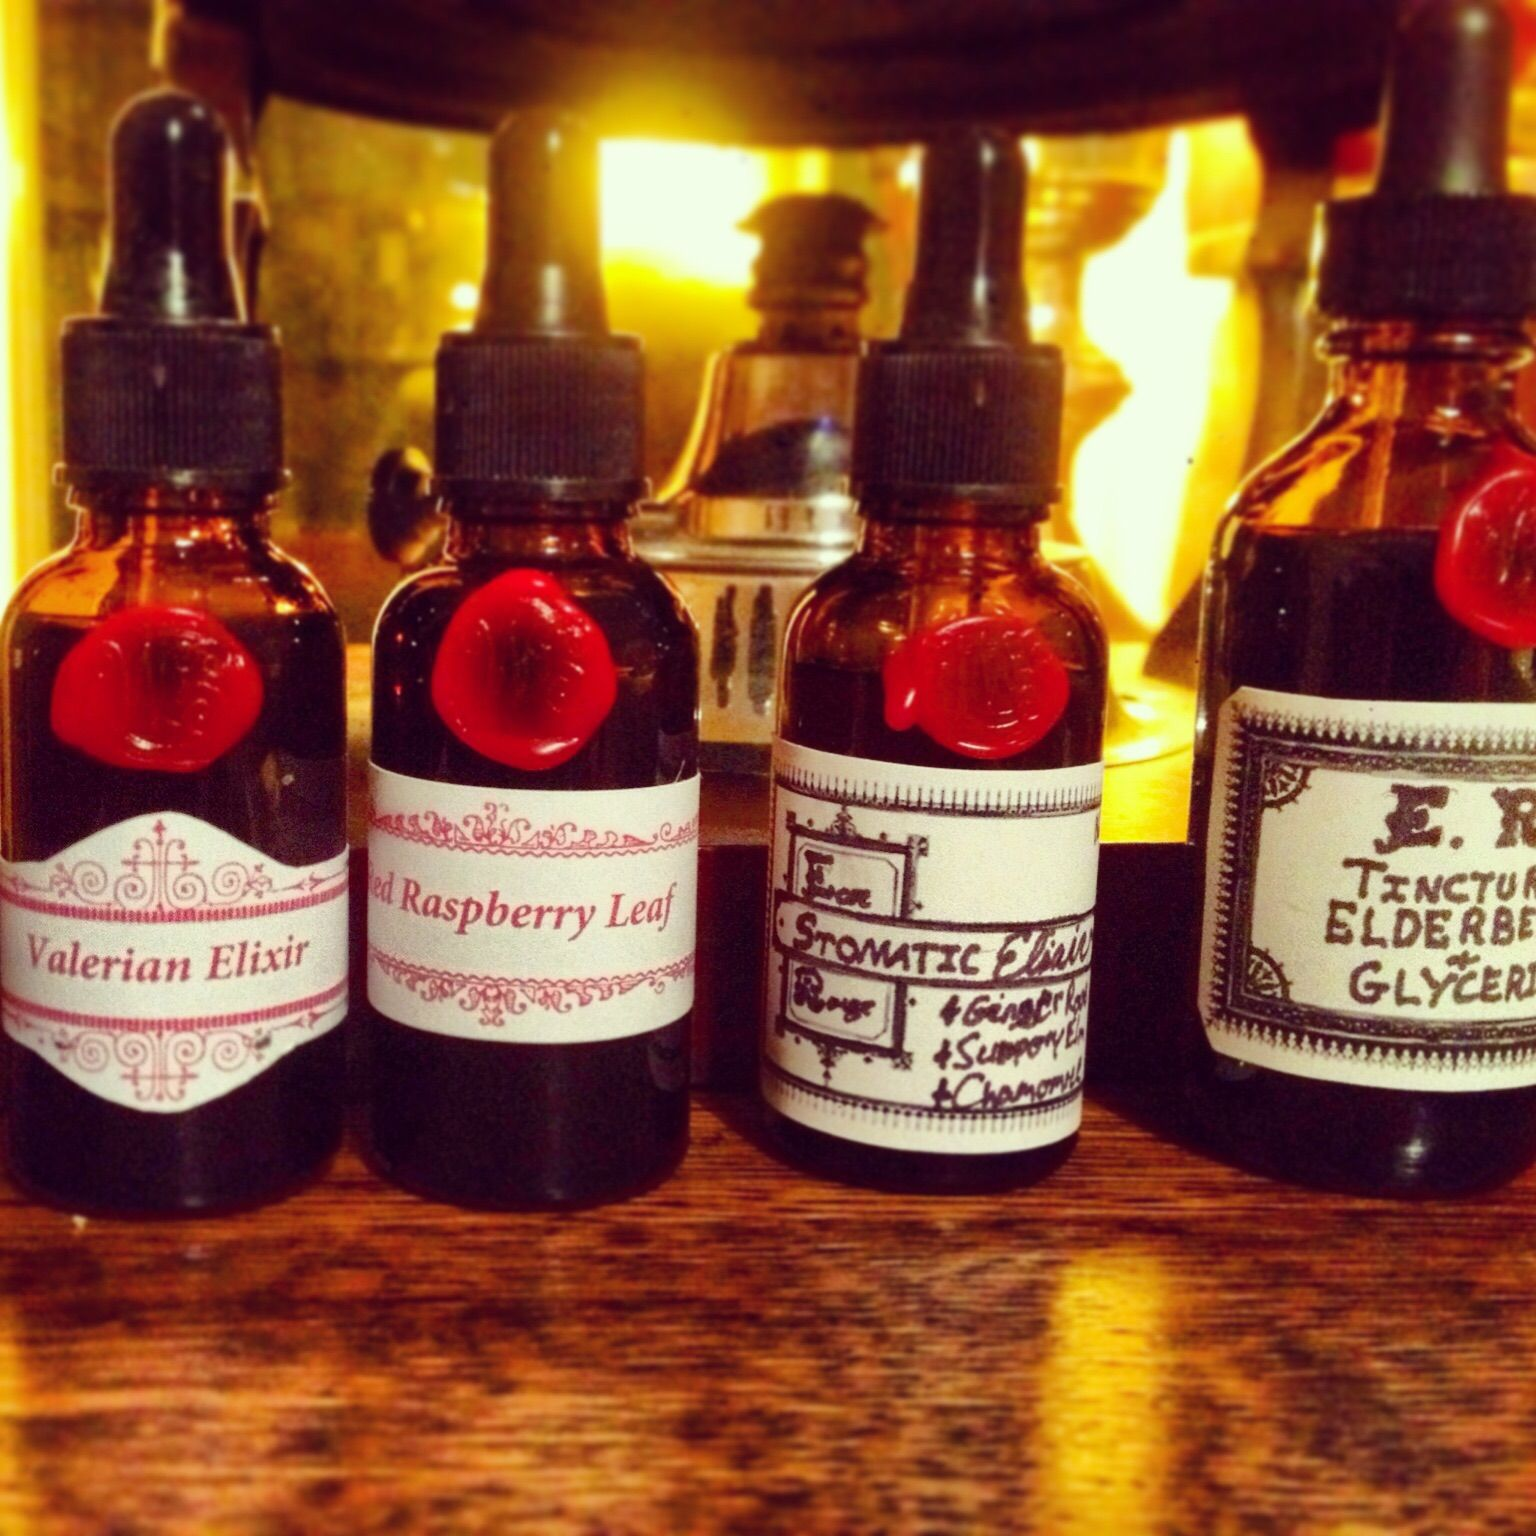 Ecor Rouge Apothecary Fairhope Alabama Homeopathic Remedies Whiskey Bottle Homeopathic